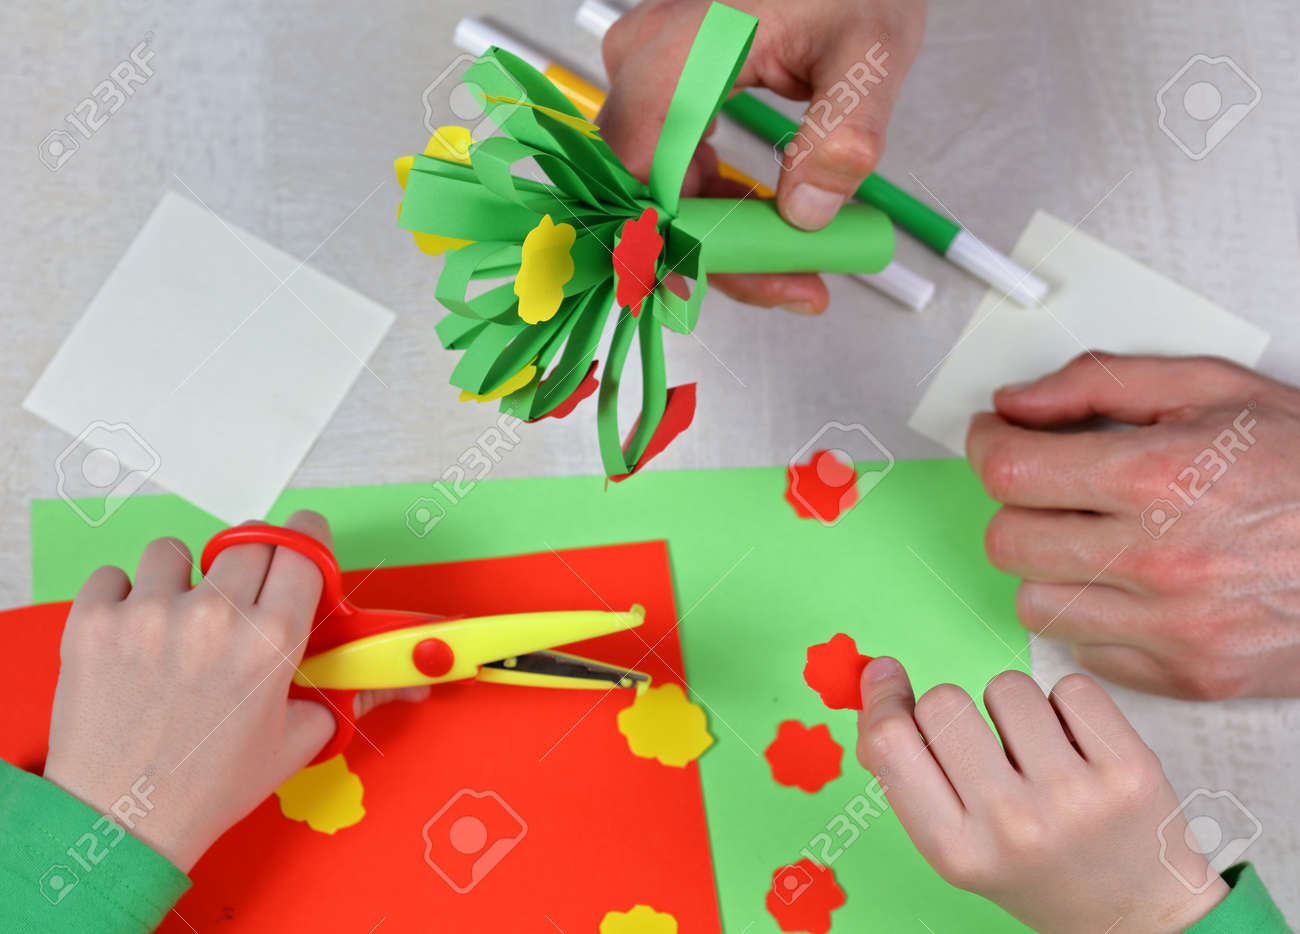 Child Cut Out Of Colored Paper Kid Making Birthday Card Father And Son Preparing